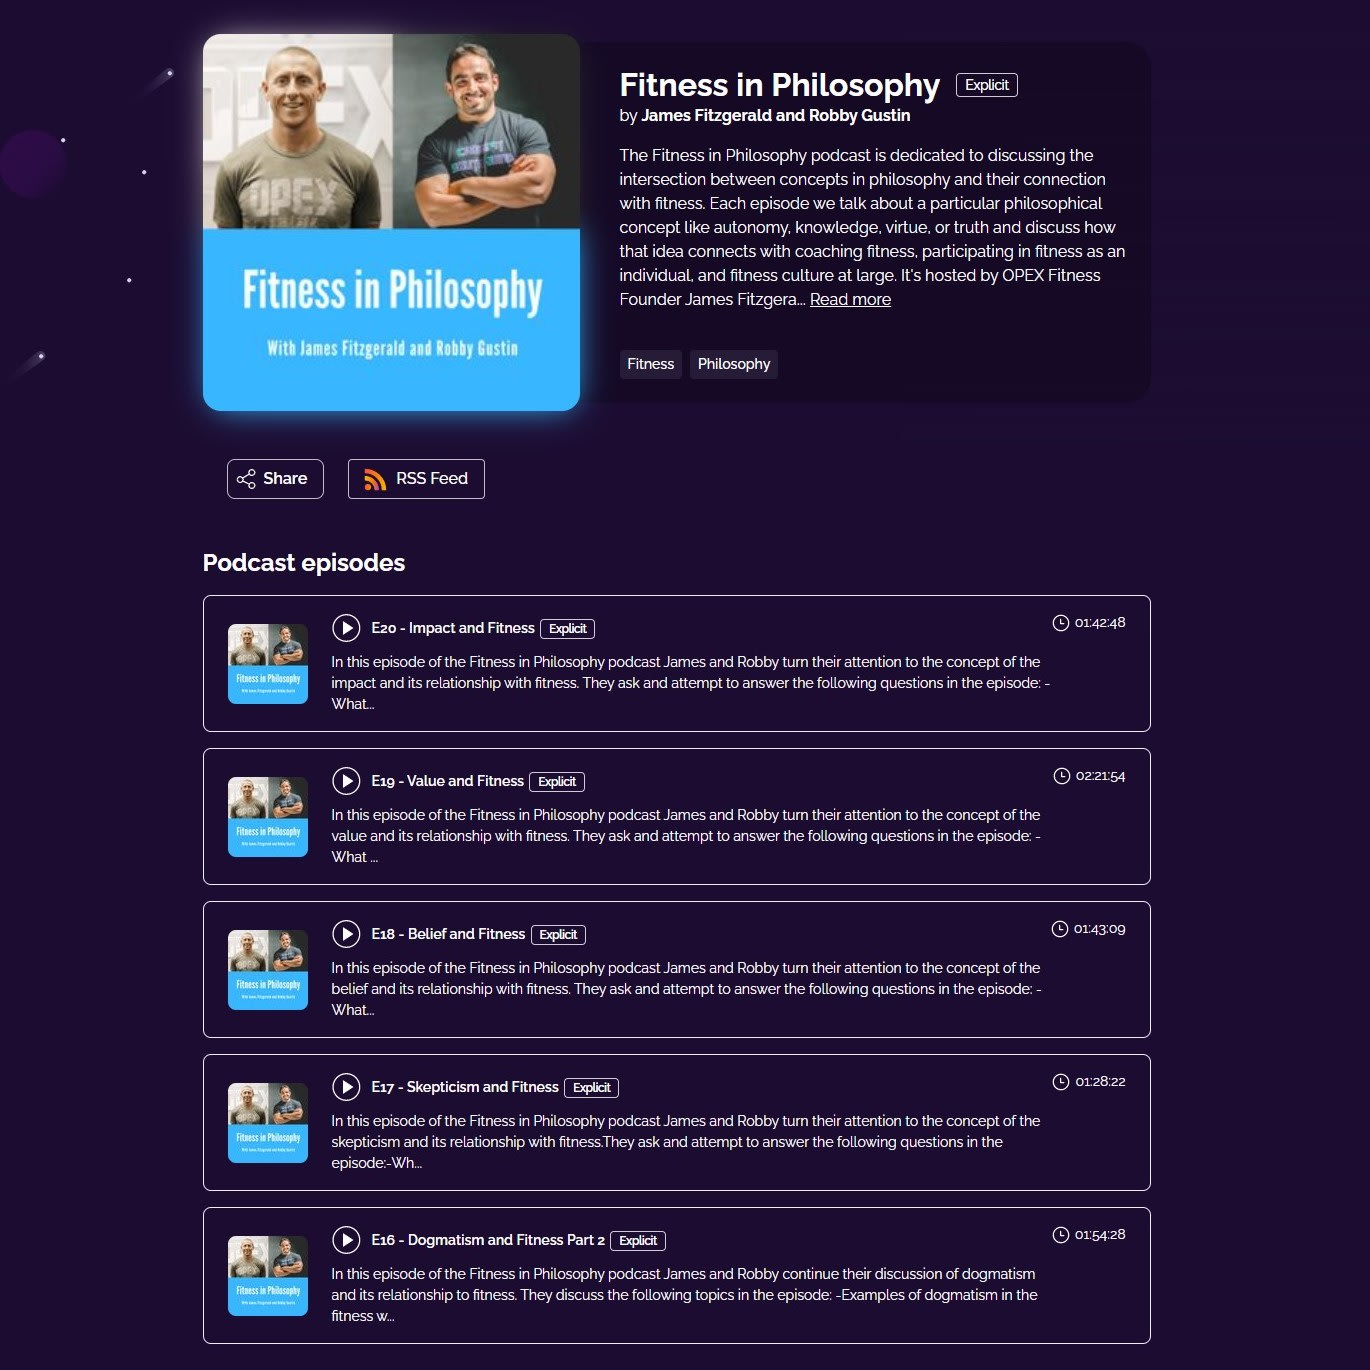 Fitness in Philosophy podcast